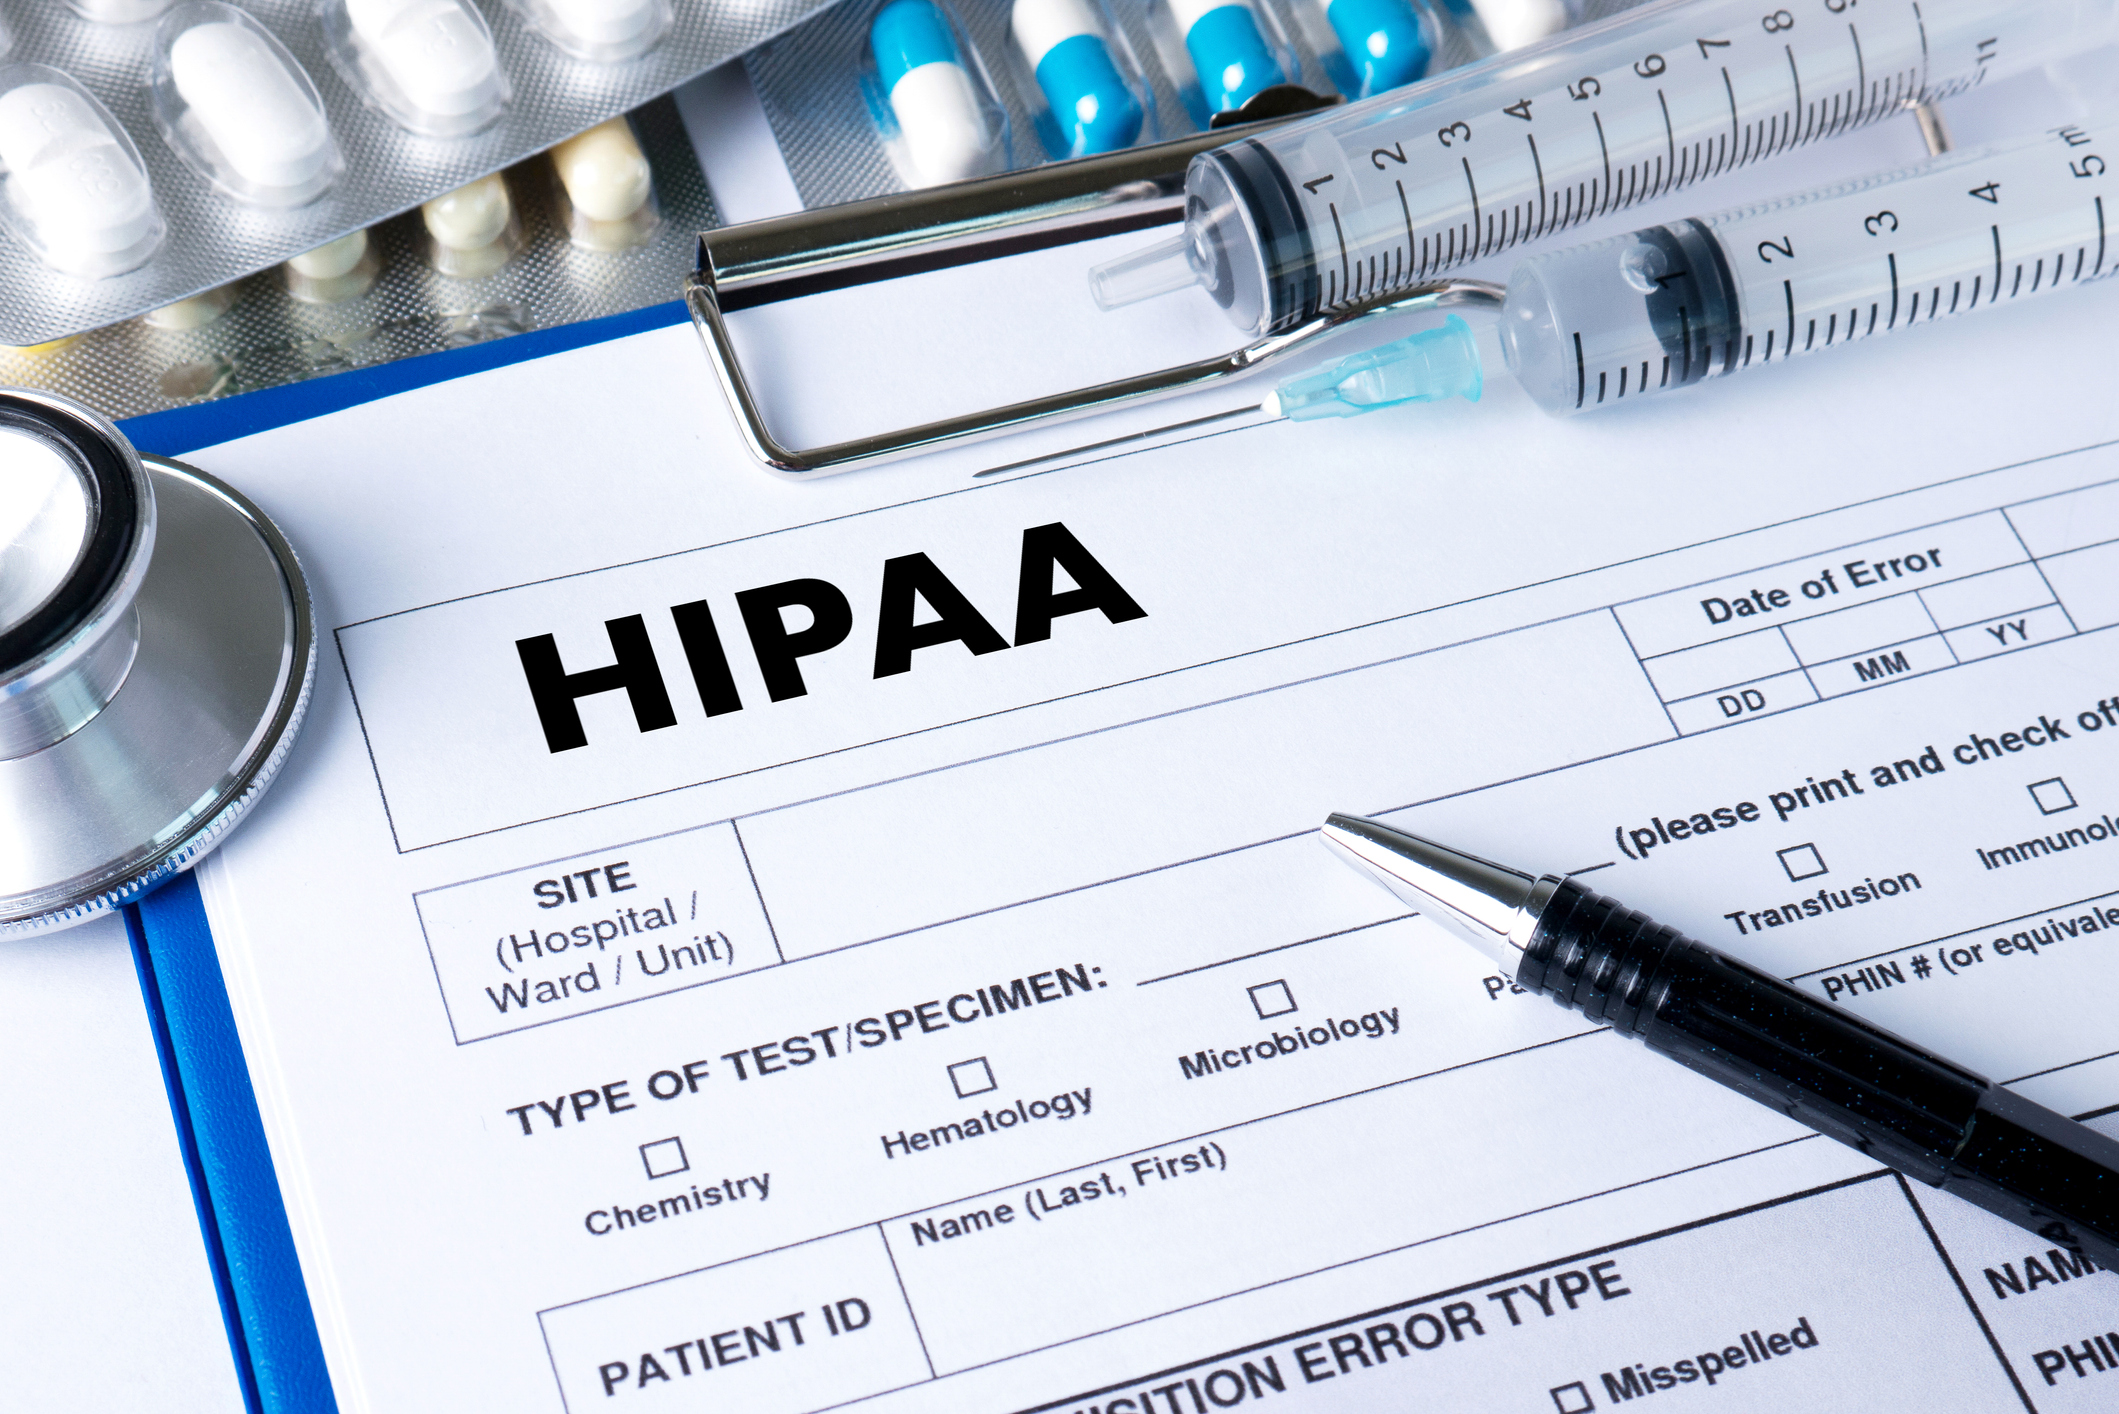 DigiSigner ensures compliance with HIPAA regulations